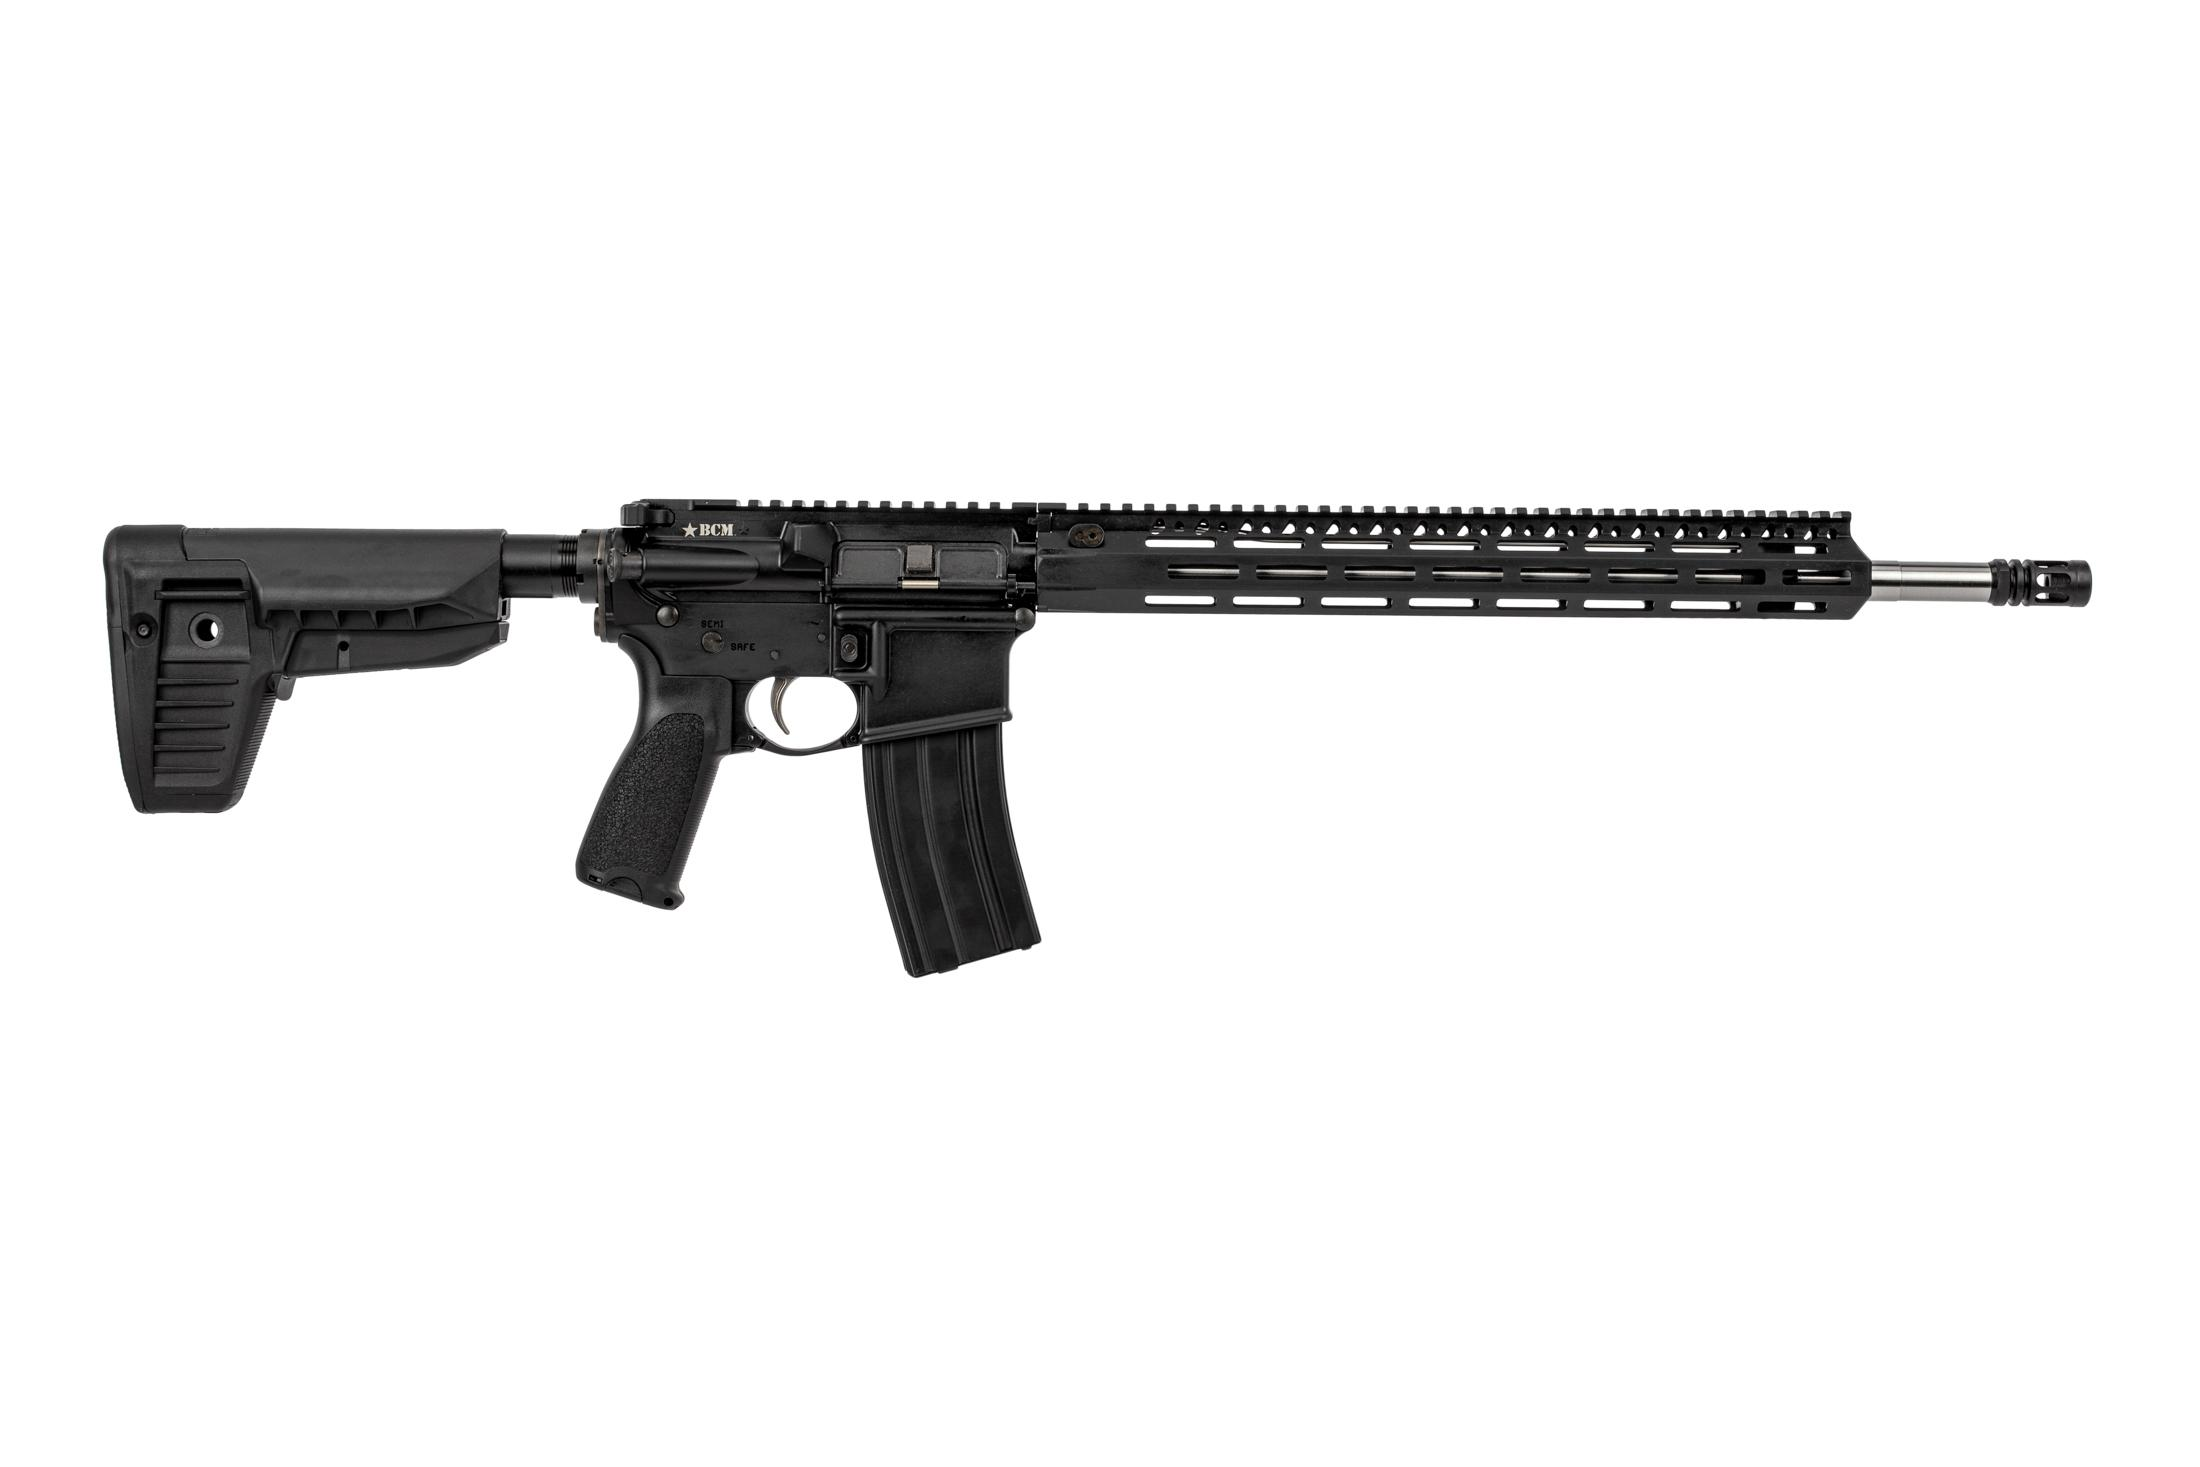 Bravo Company RECCE-18 MCMR Precision Rifle features an 18 inch 410 stainless steel barrel